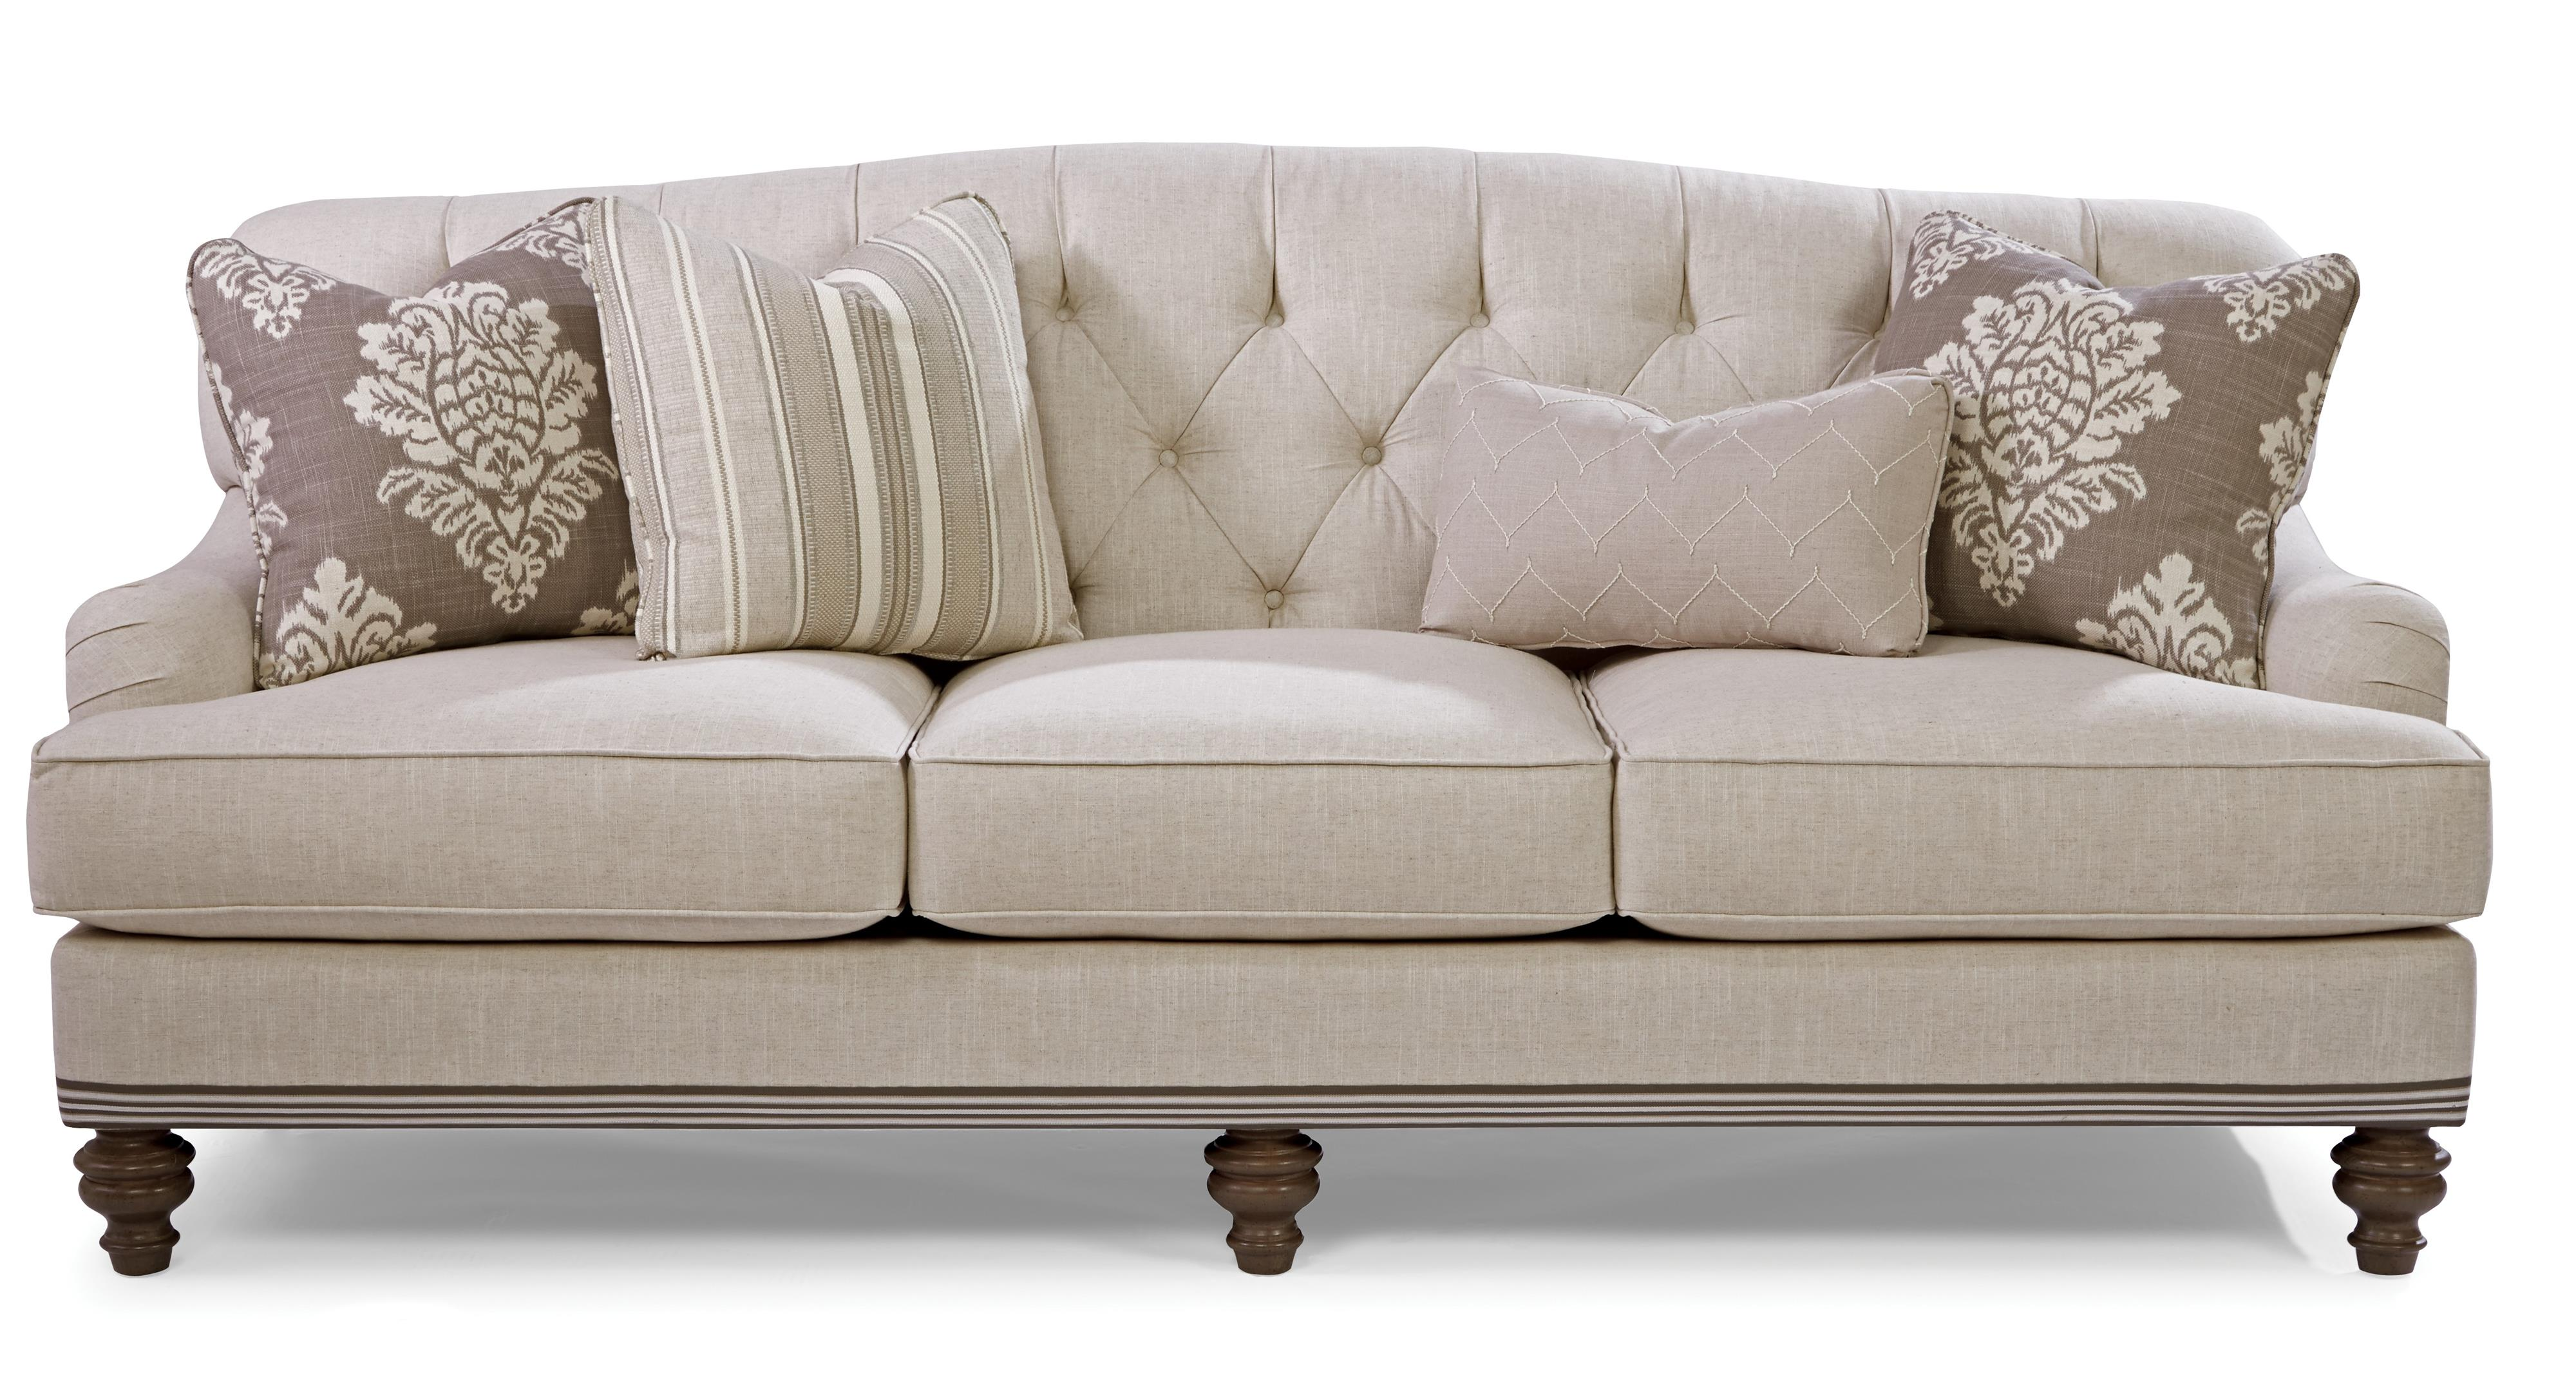 Paula Deen By Craftmaster P744900 Traditional Tufted Back